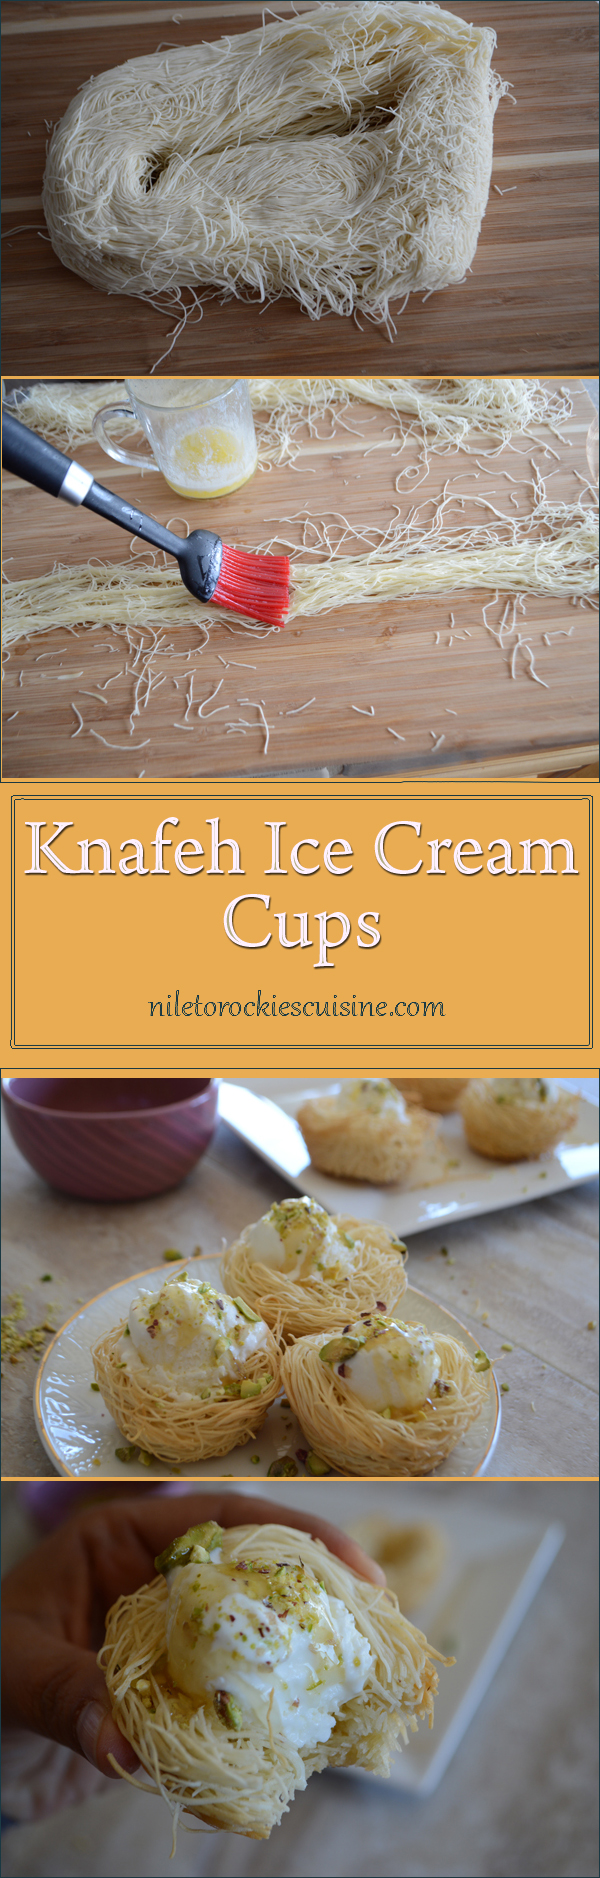 Crunchy shredded phyllo dough, beautifully wrapped around your favorite kind of ice cream, probably sprinkled with nuts and with a drizzle of honey, this is a heavenly combination of flavors. Knafeh ice cream cups is my favorite summer/Ramadan treasure.